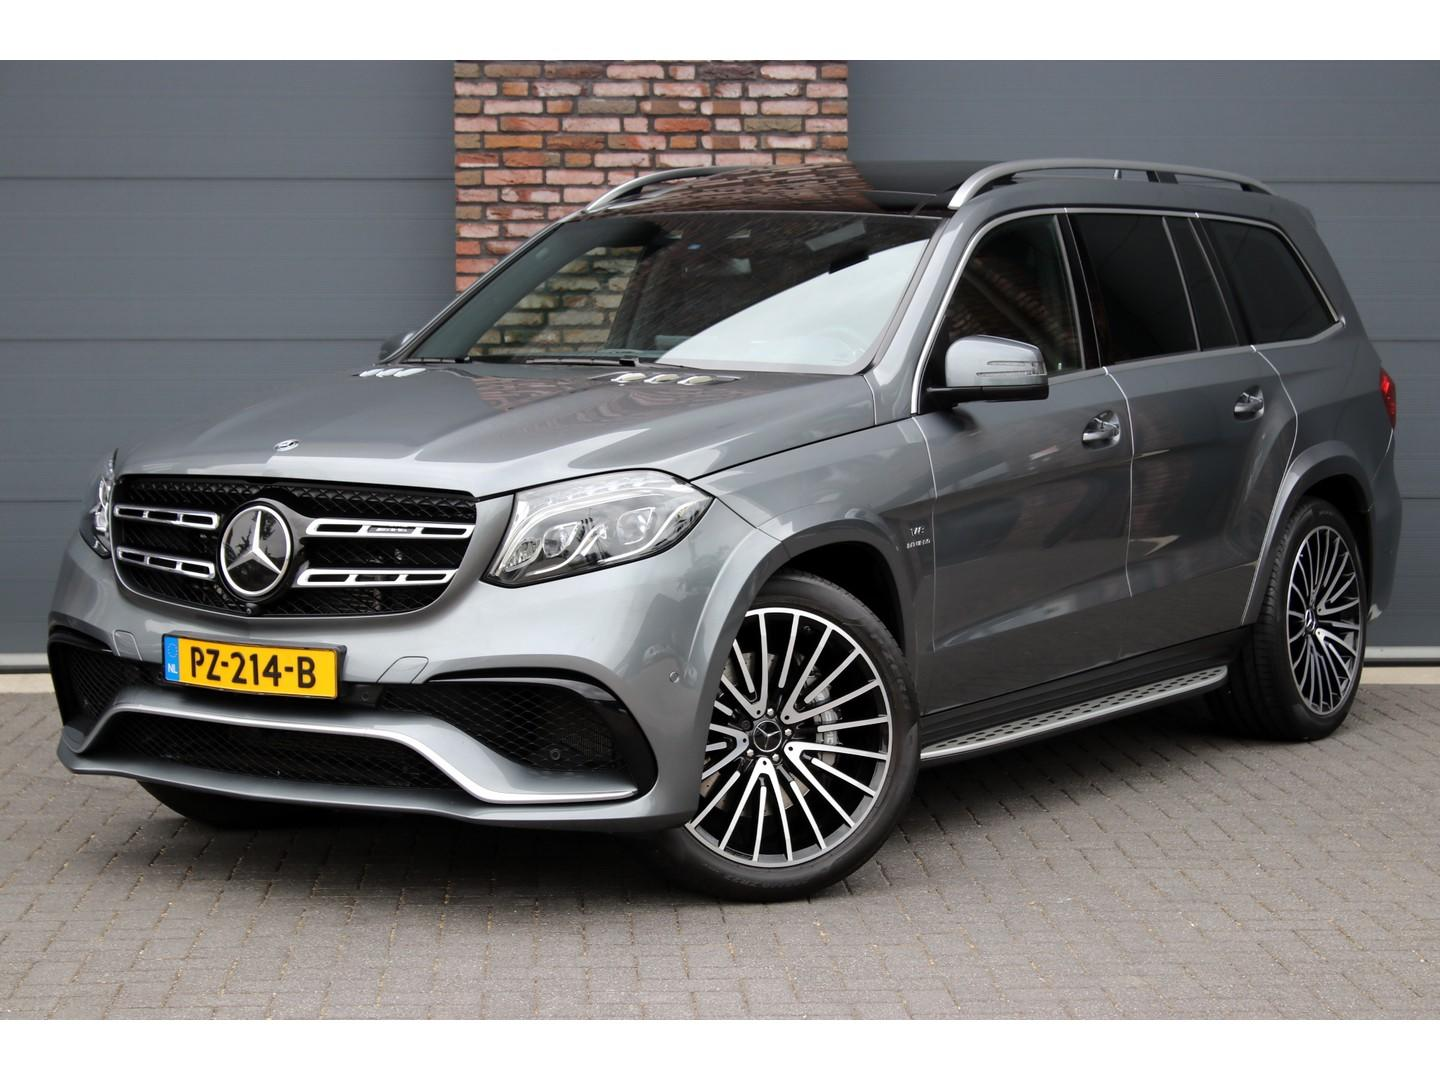 Mercedes-benz Gls 63 amg 4-matic aut7, amg drivers package, distronic+, massage, panoramadak,airmatic,7 zitplaatsen, stoel-verwarming/ventilatie, memory, comand, surround camera, tv, harman kardon, keyless-go, apple carplay, elek. trekhaak, etc.